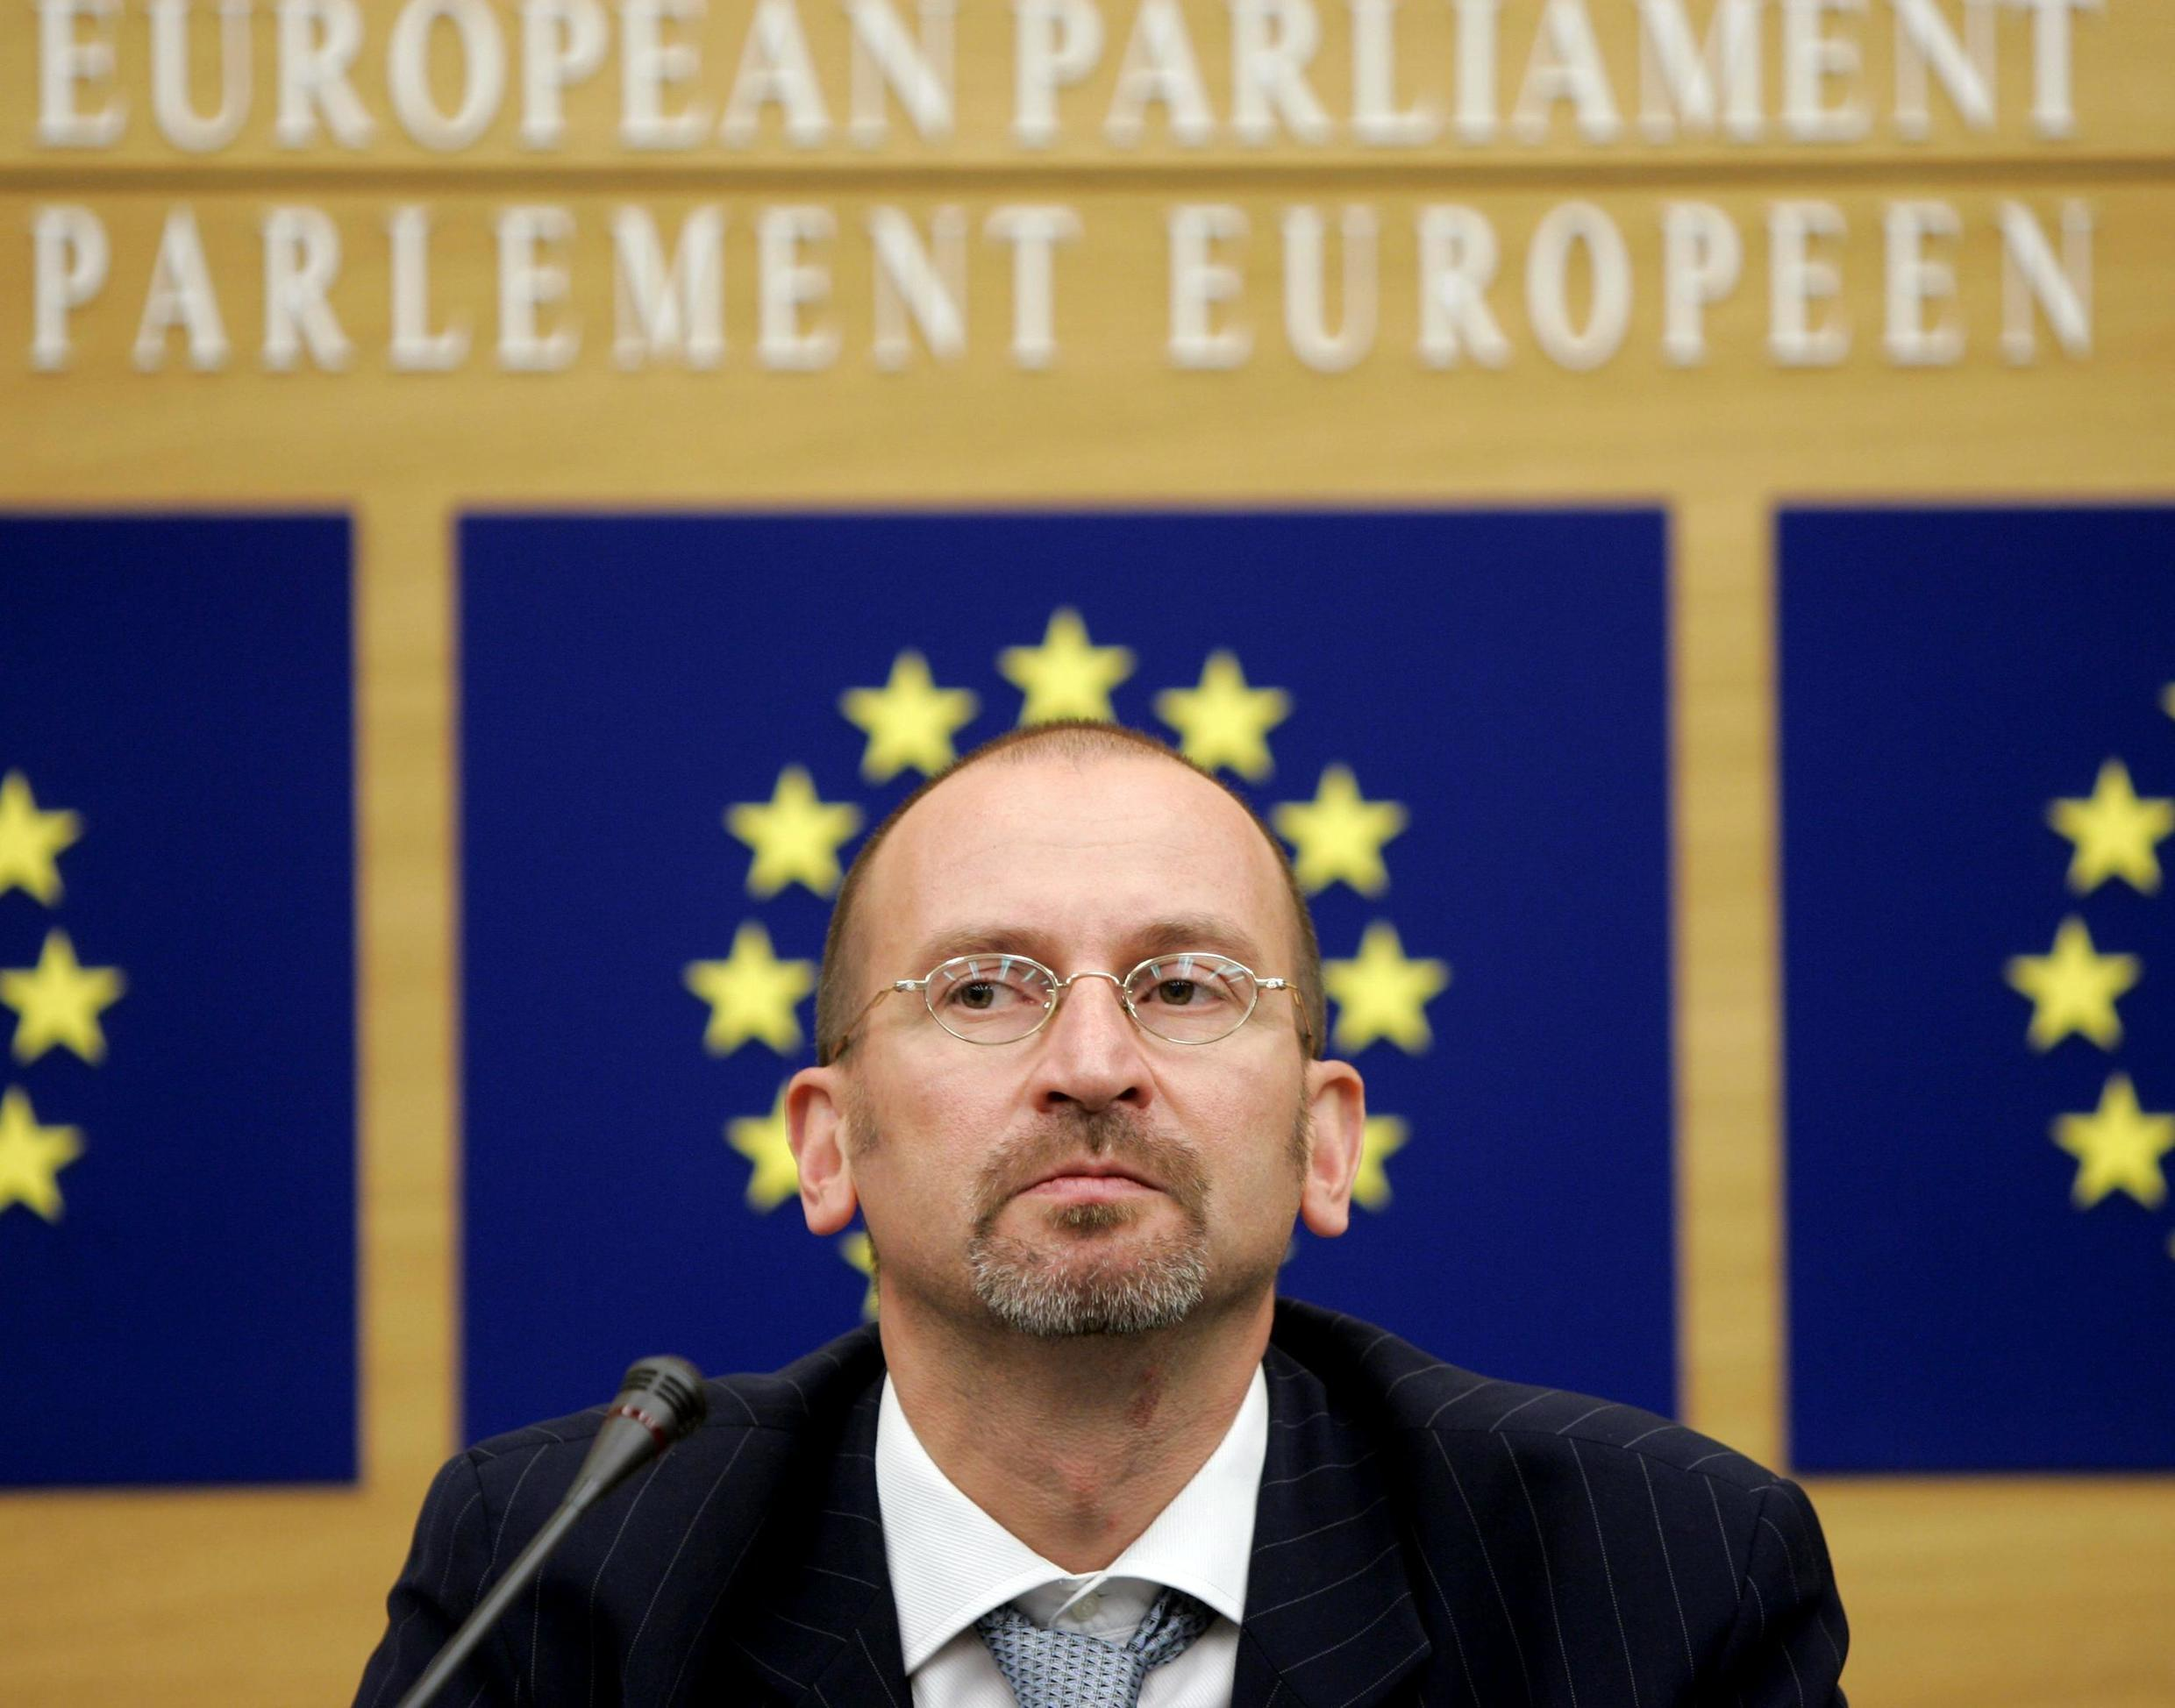 Hungaryan MEP Josef Szajer was found with bloodied hands and in possession of ecstasy when he was detained.